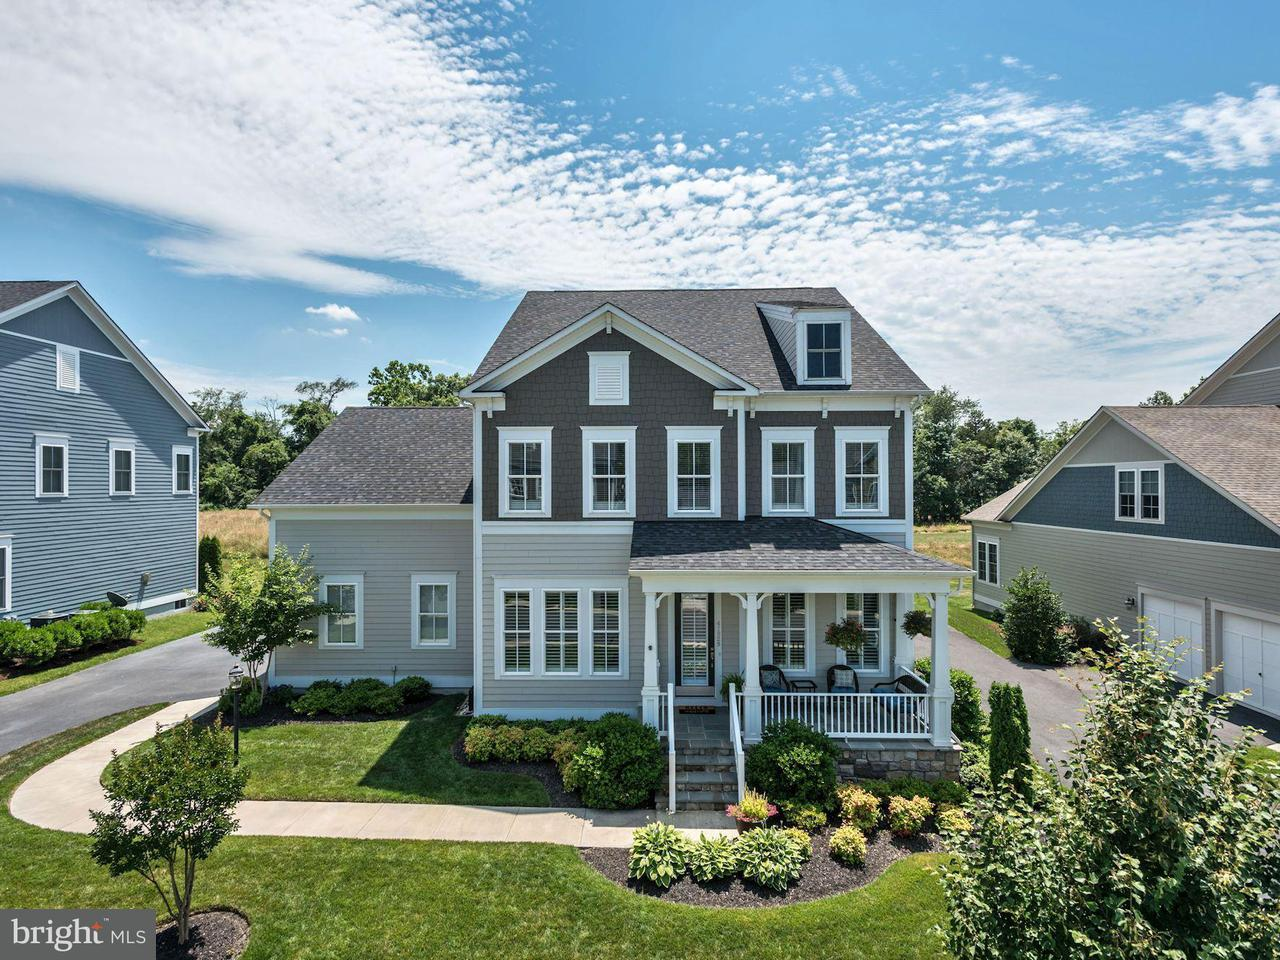 Single Family Home for Sale at 41829 Marigold Mill Place 41829 Marigold Mill Place Ashburn, Virginia 20148 United States